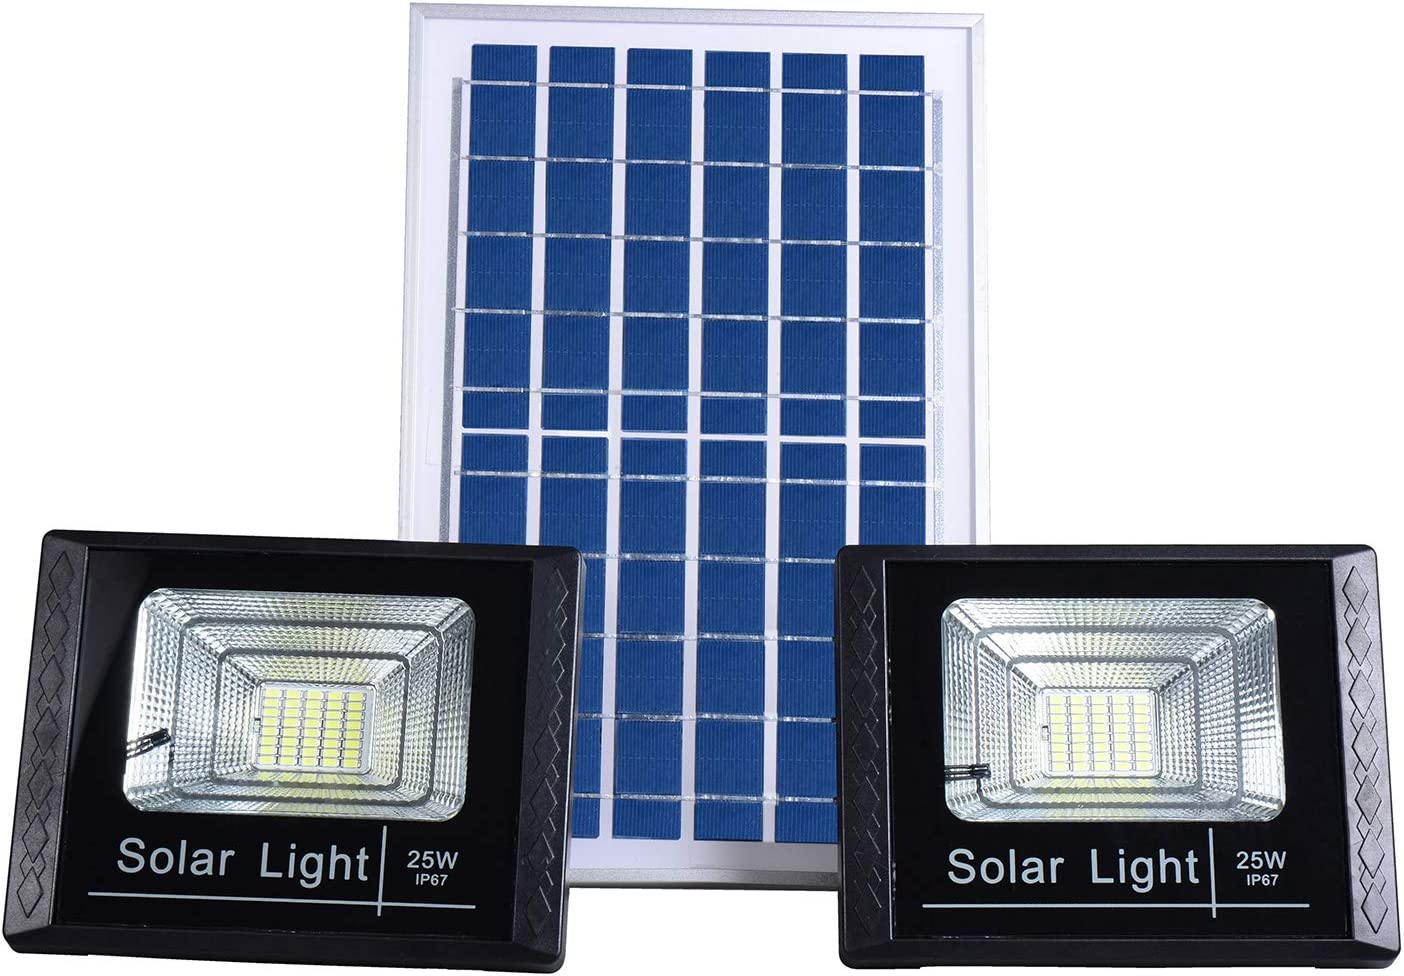 Solar Flood Security Lights Outdoor Dusk to Dawn with 13.7 x 9.4 Panels IP67 Waterproof Remote Control Dual 40 LEDs White Light Source Adjustable Brightness for Yard,Driveway,Porch,Garage,Barn